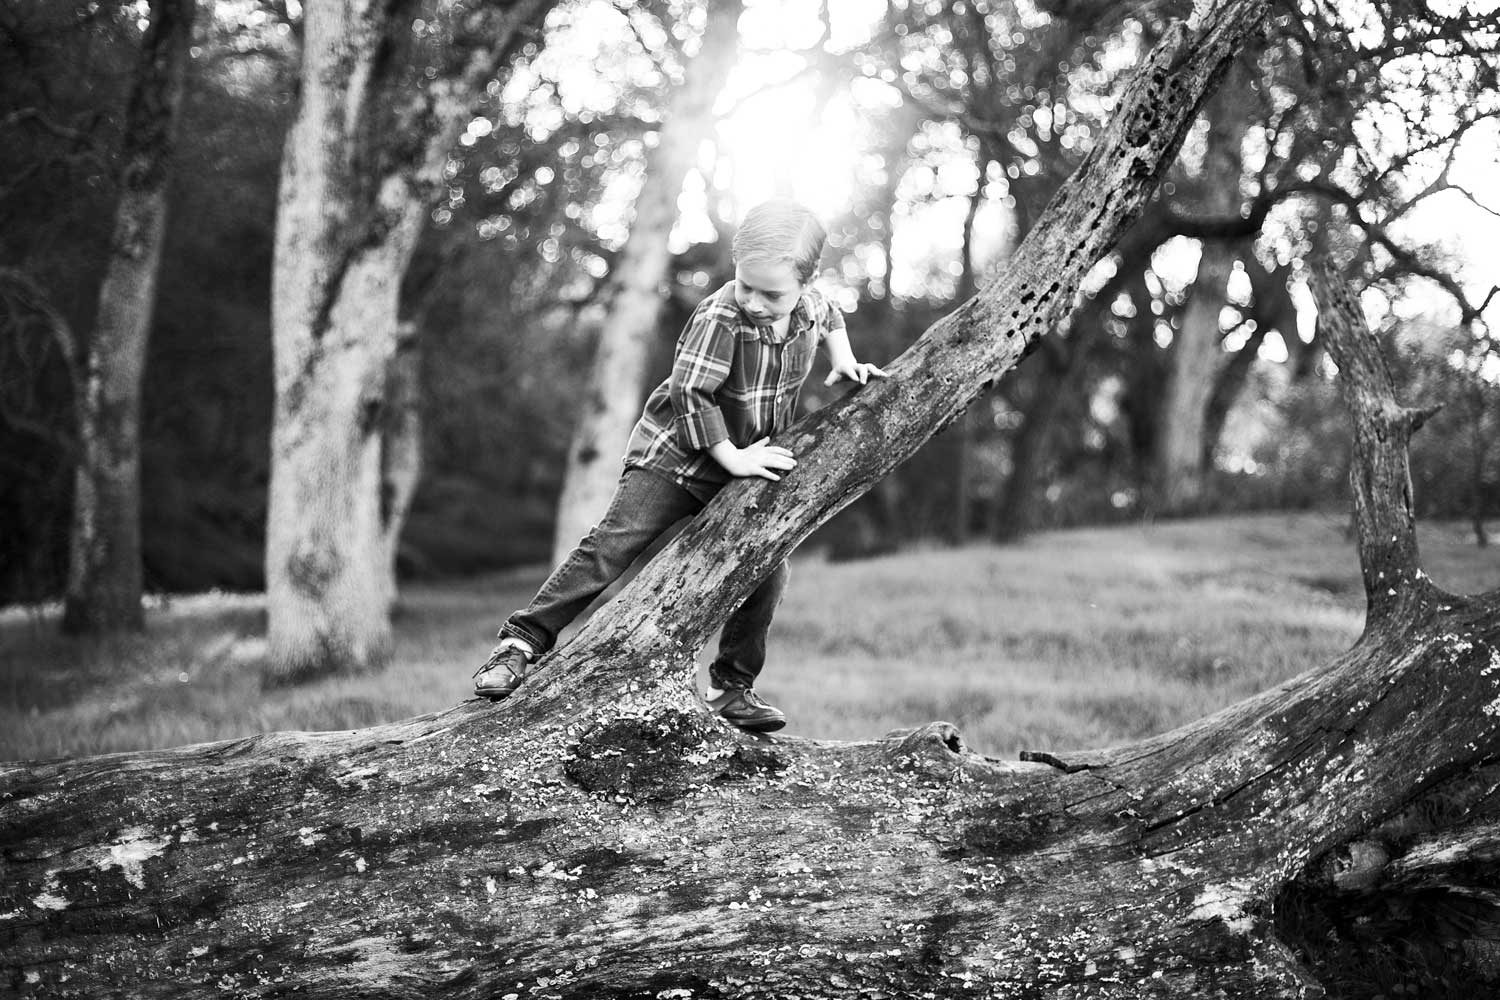 A young boy explores and climbs on a tree at a park in Roseville, California.